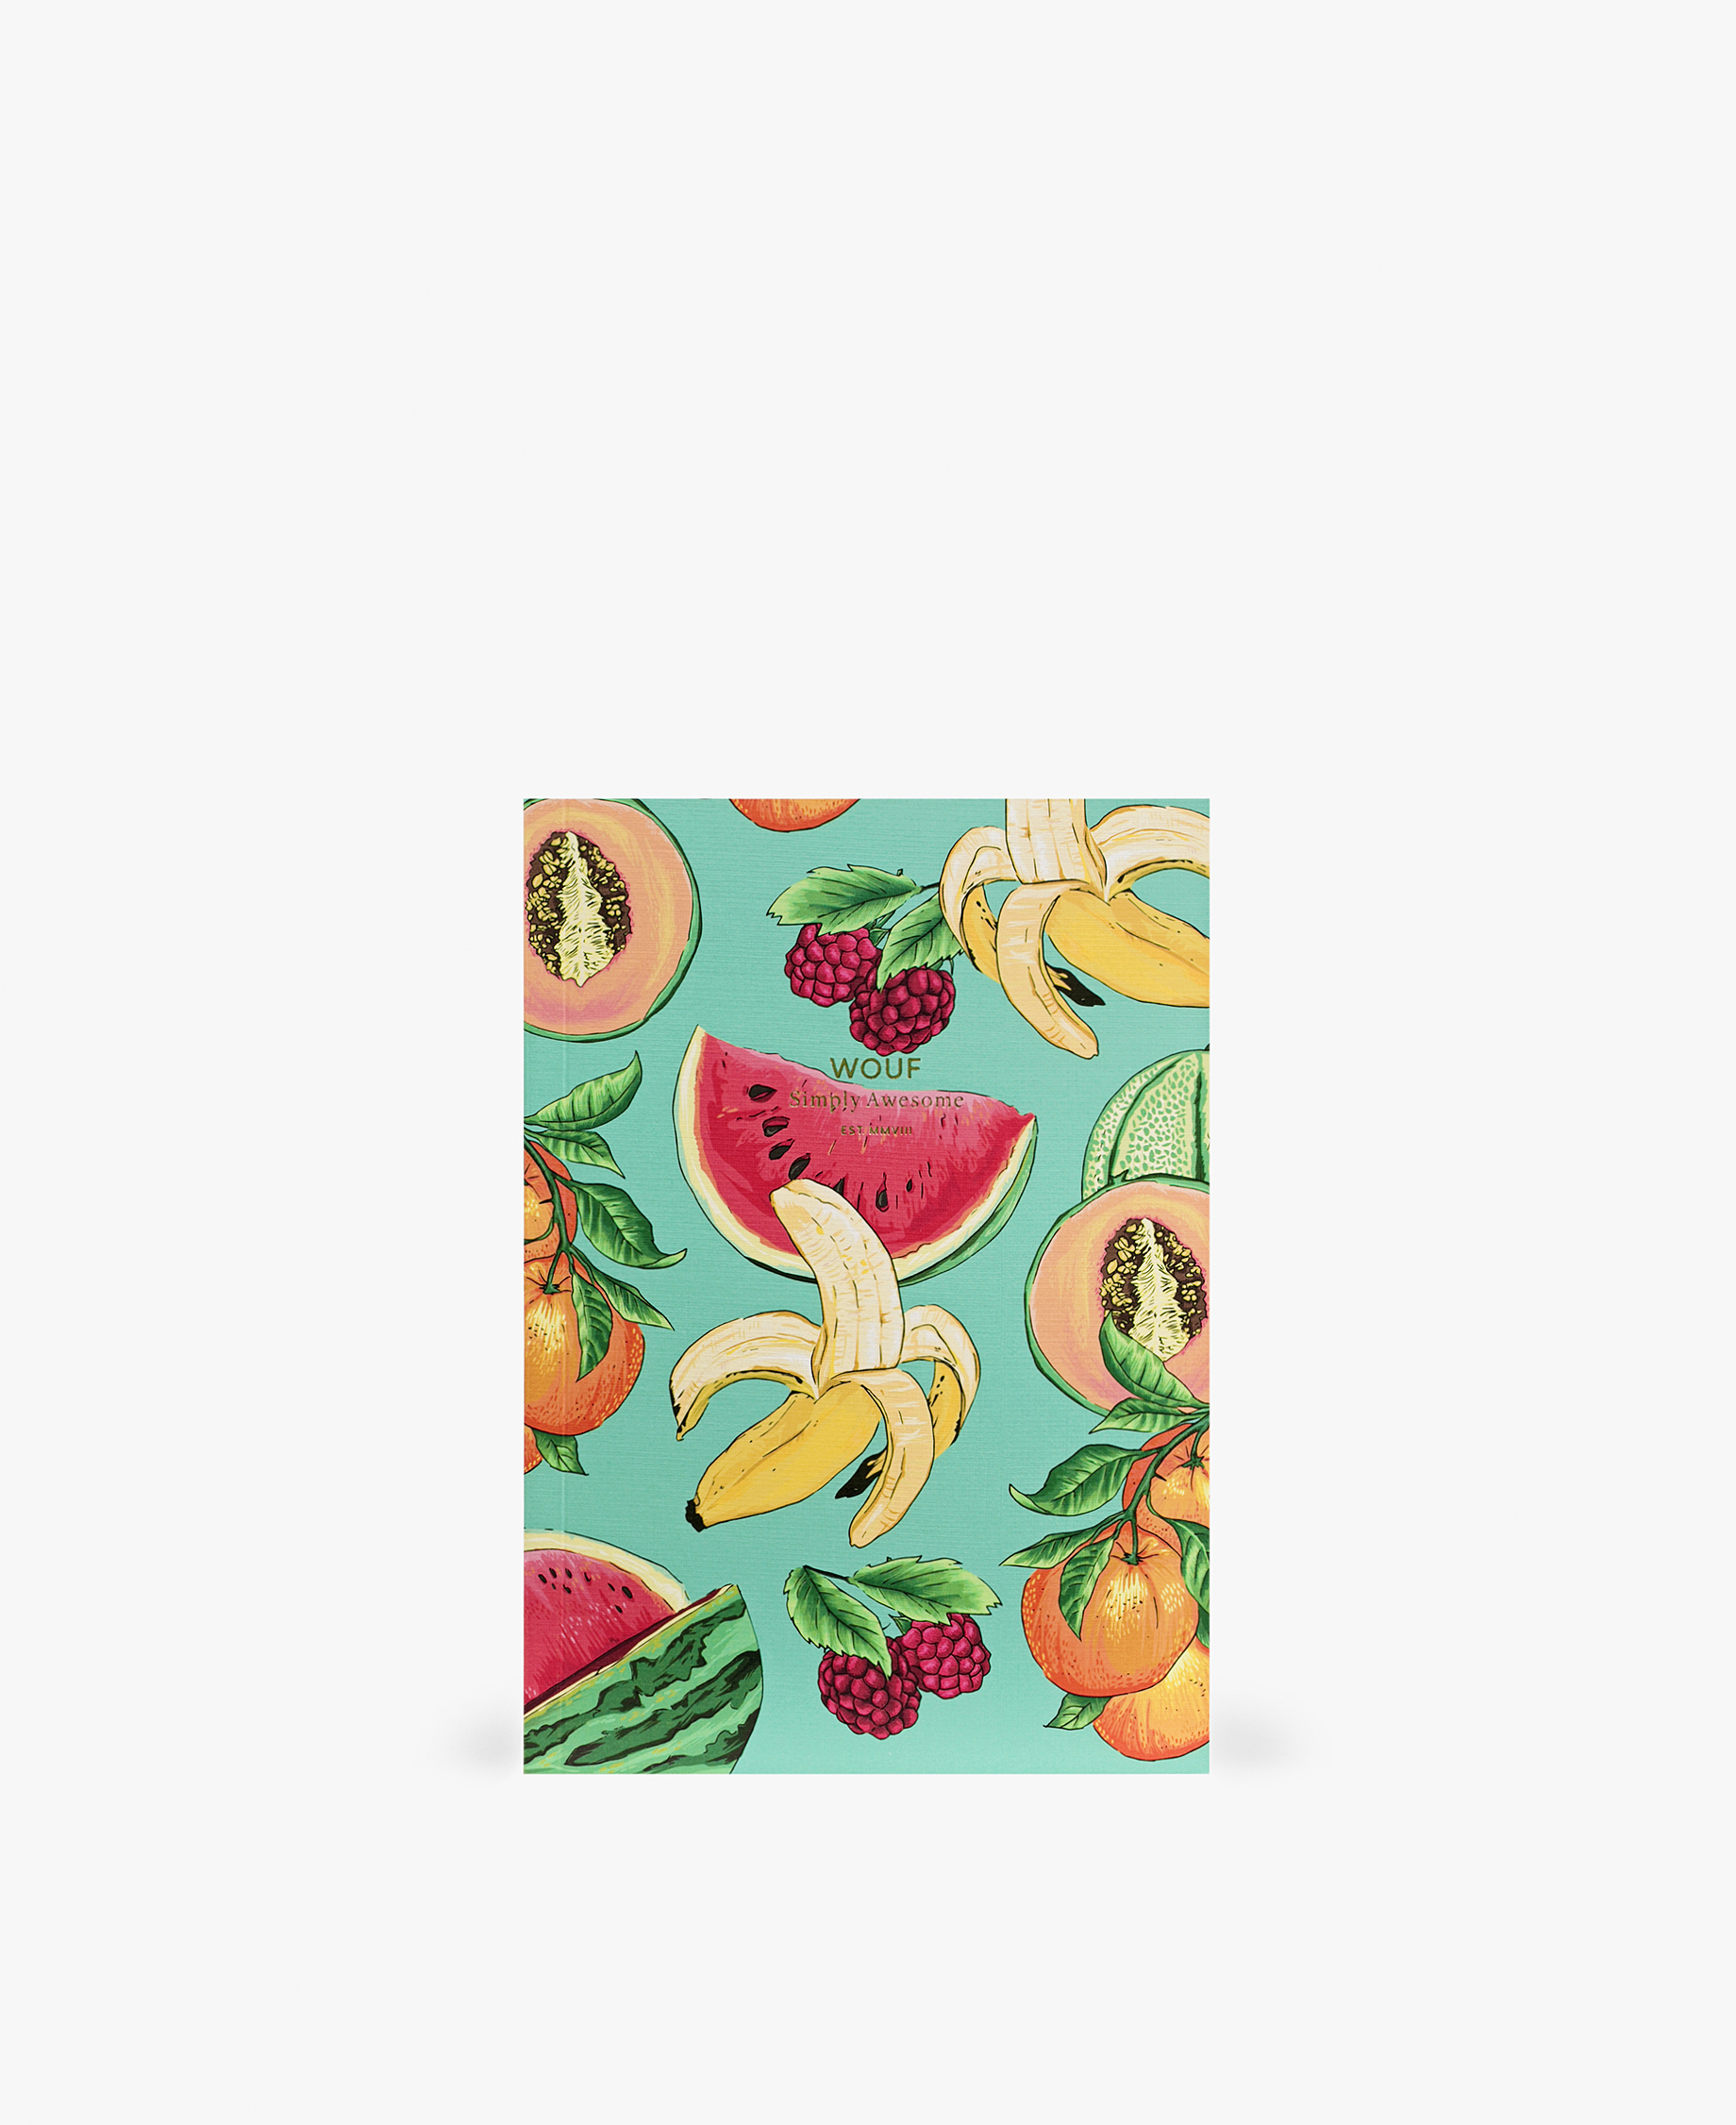 journal notebook with bananas, watermelon and other fruits